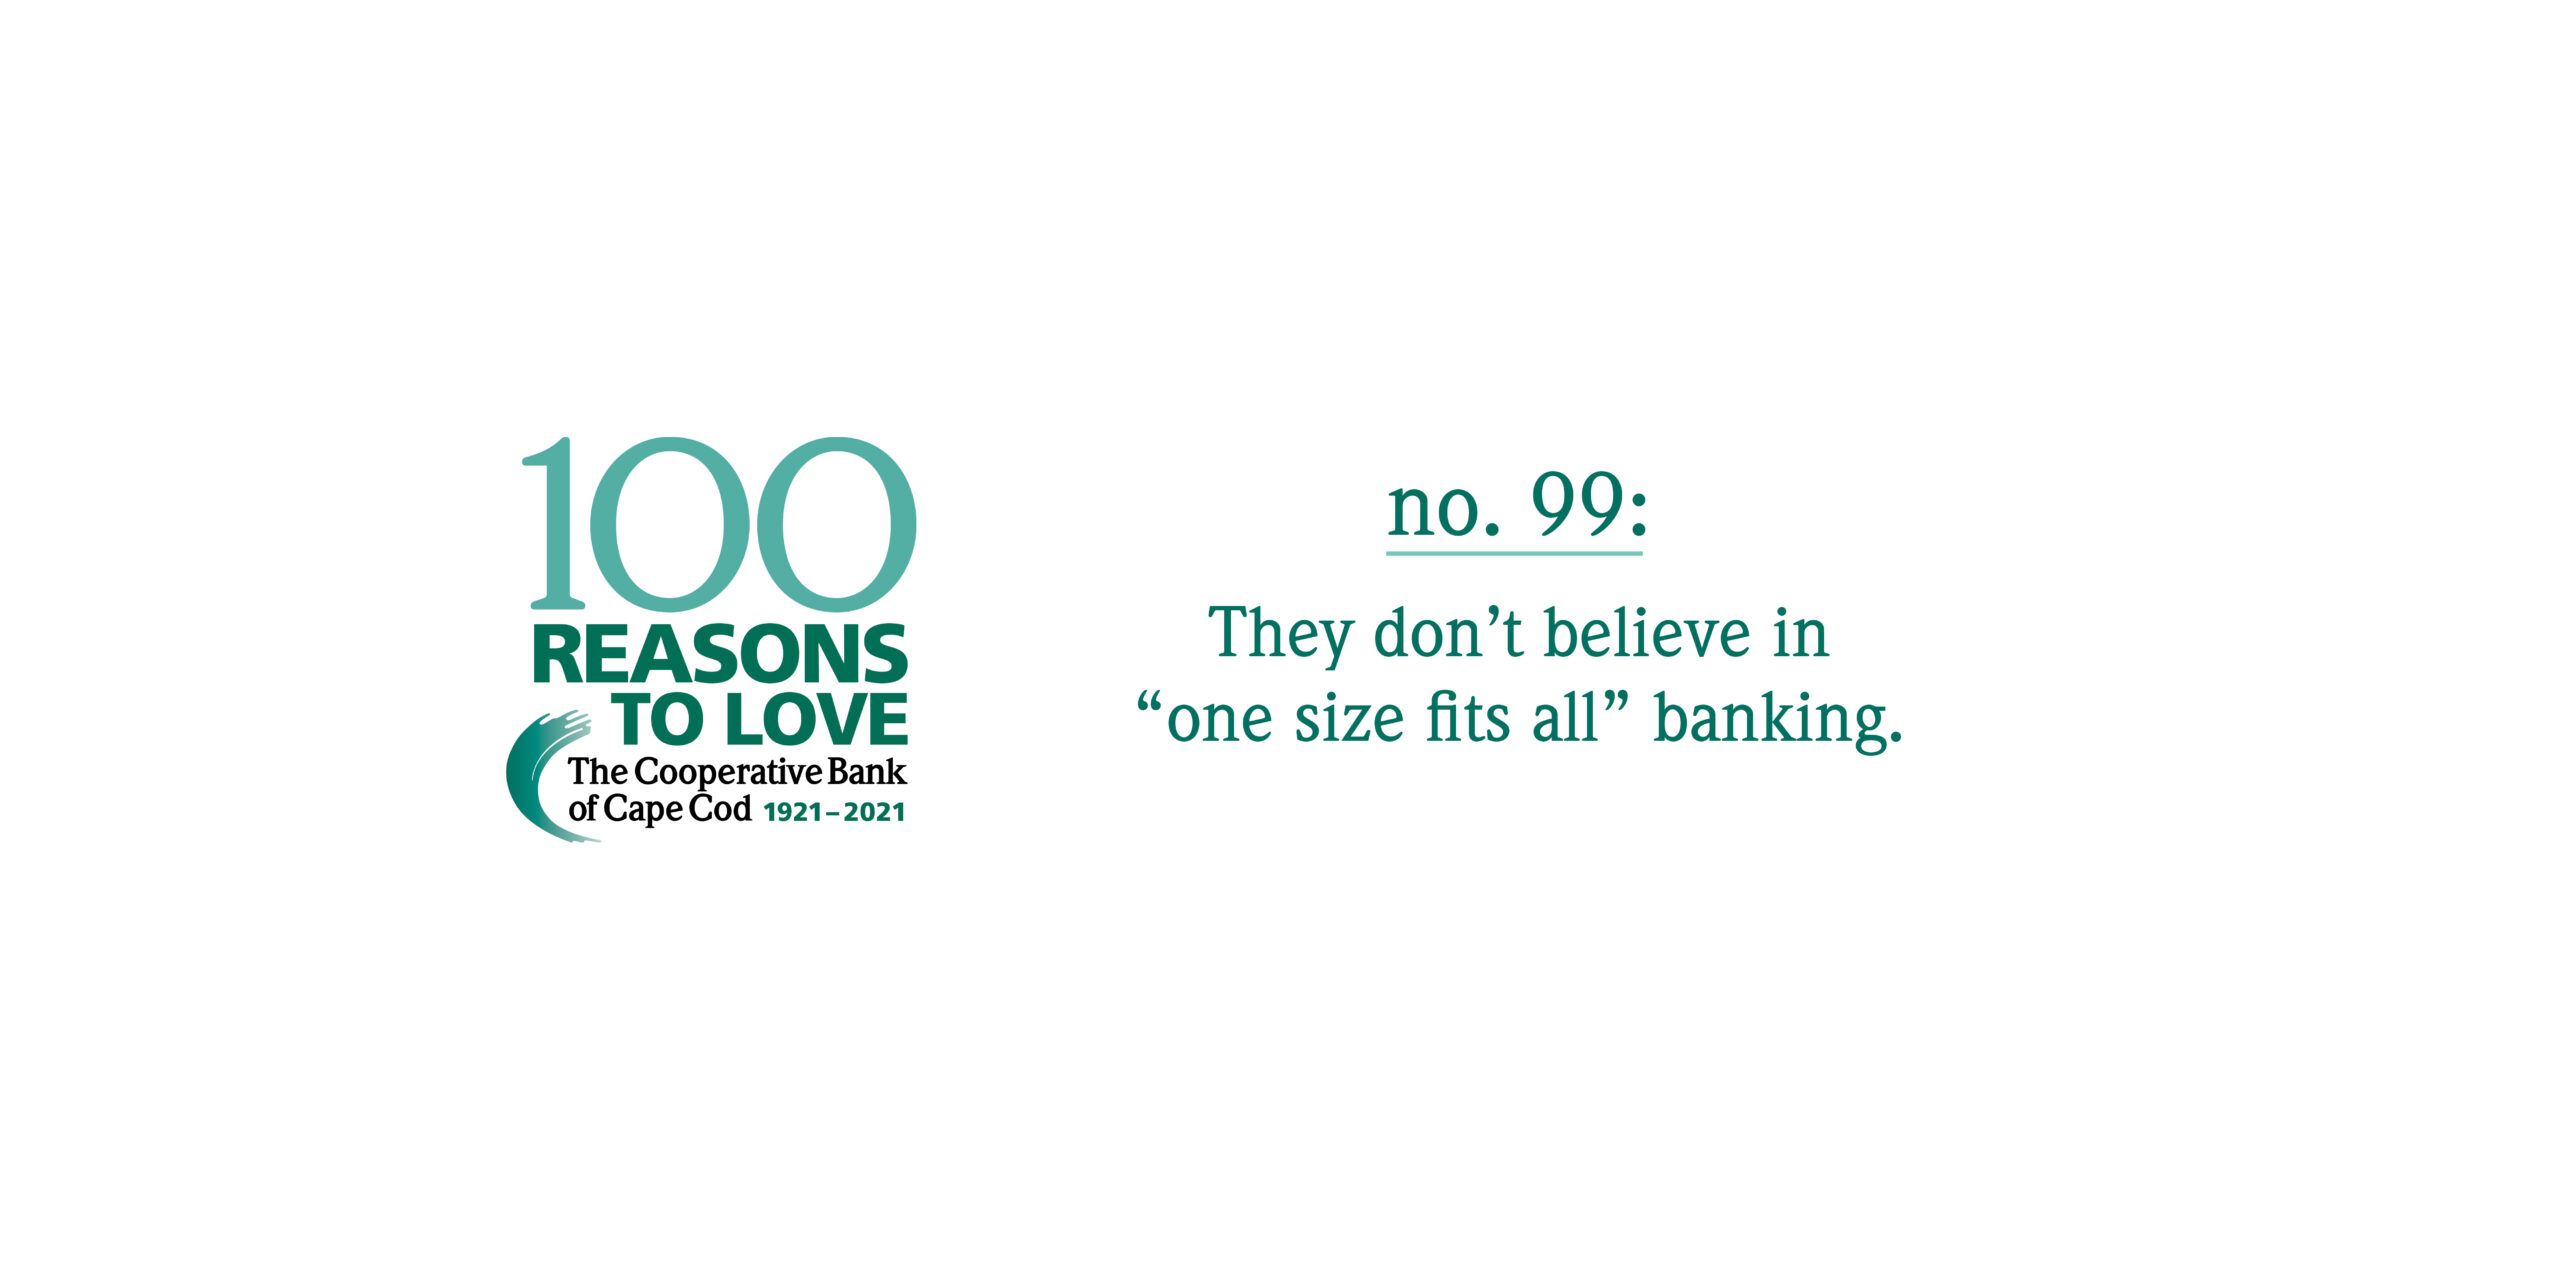 100 Reasons to Love The Coop - Reason #99: They don't believe in